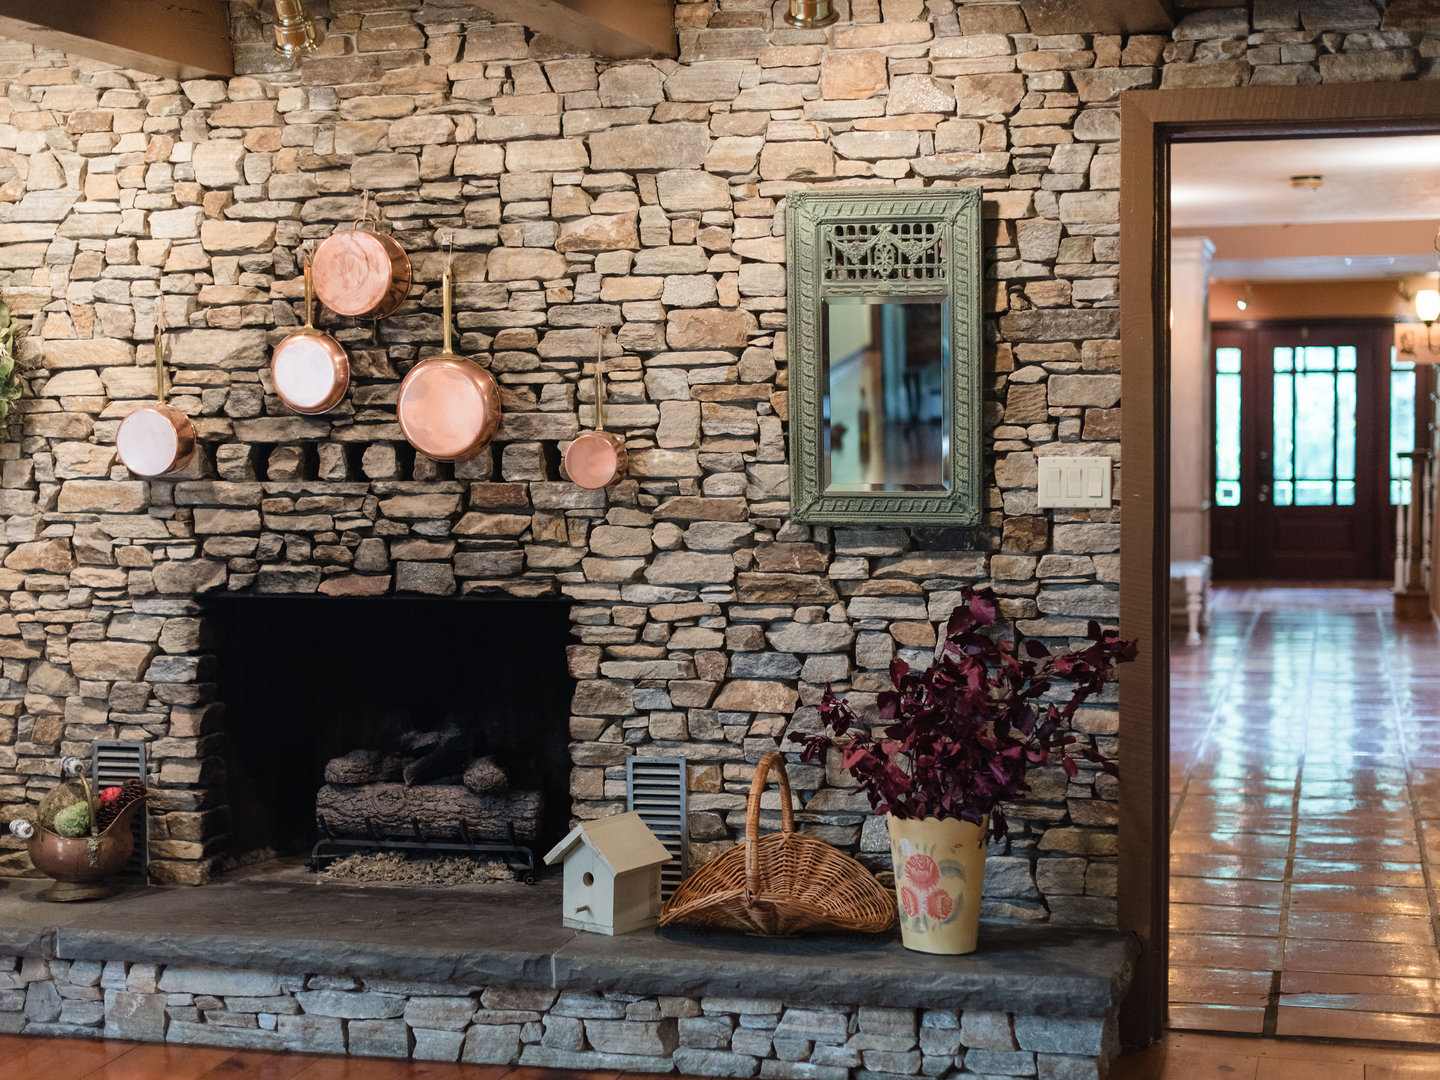 A fire place sitting in front of a brick building at The Inn at White Oak.